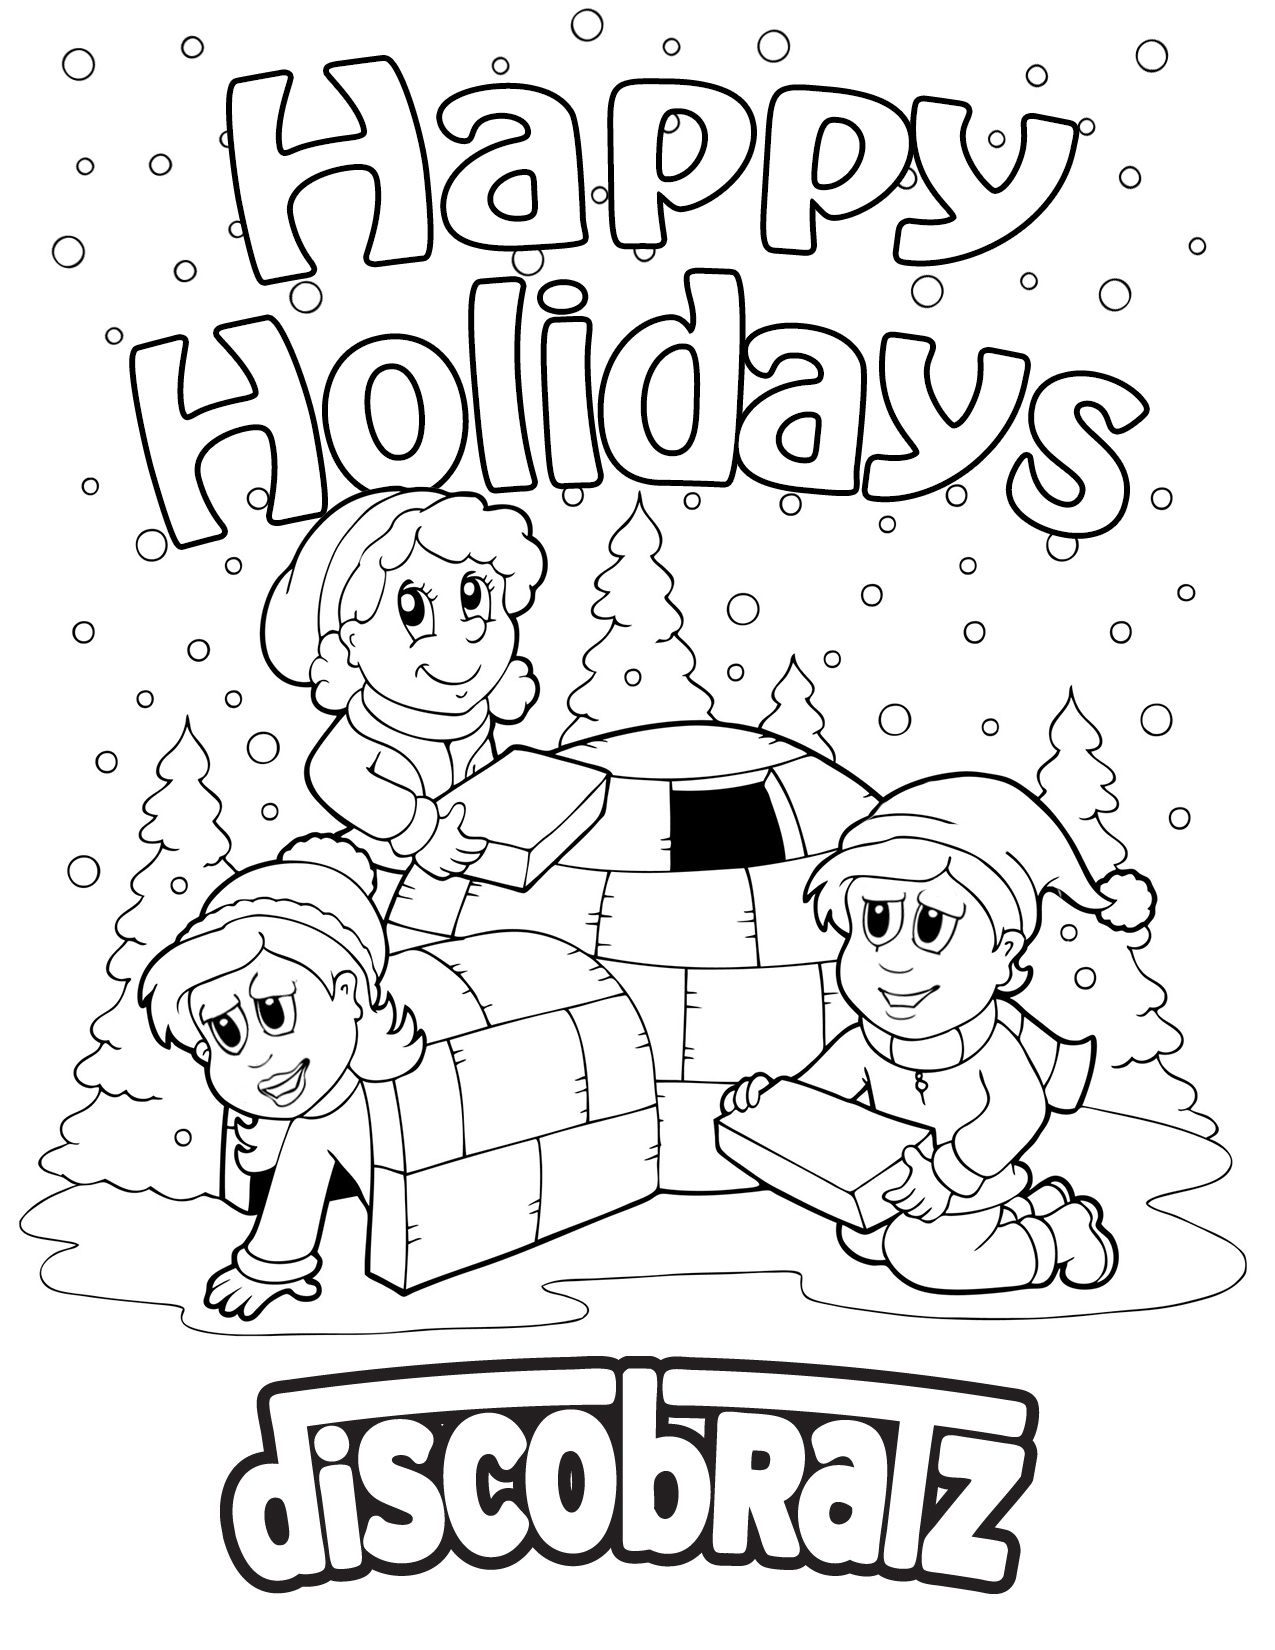 DiscoBratz Welcomes the Winter Weather with a Holiday